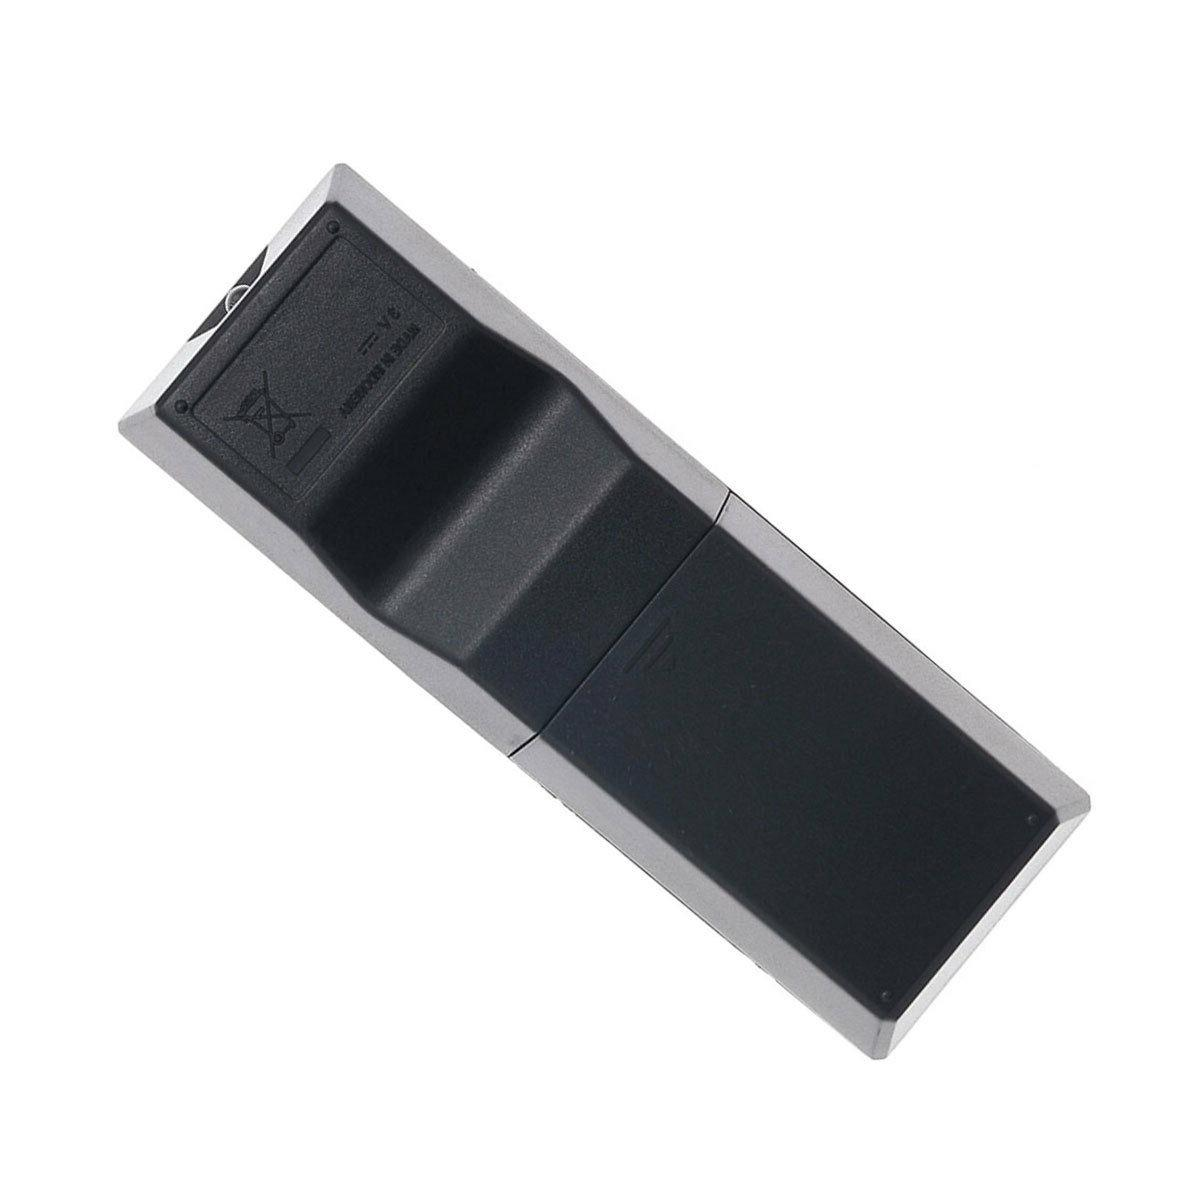 New Replacement BDP-S2500 BDP-S3500 DVD Remote Sony